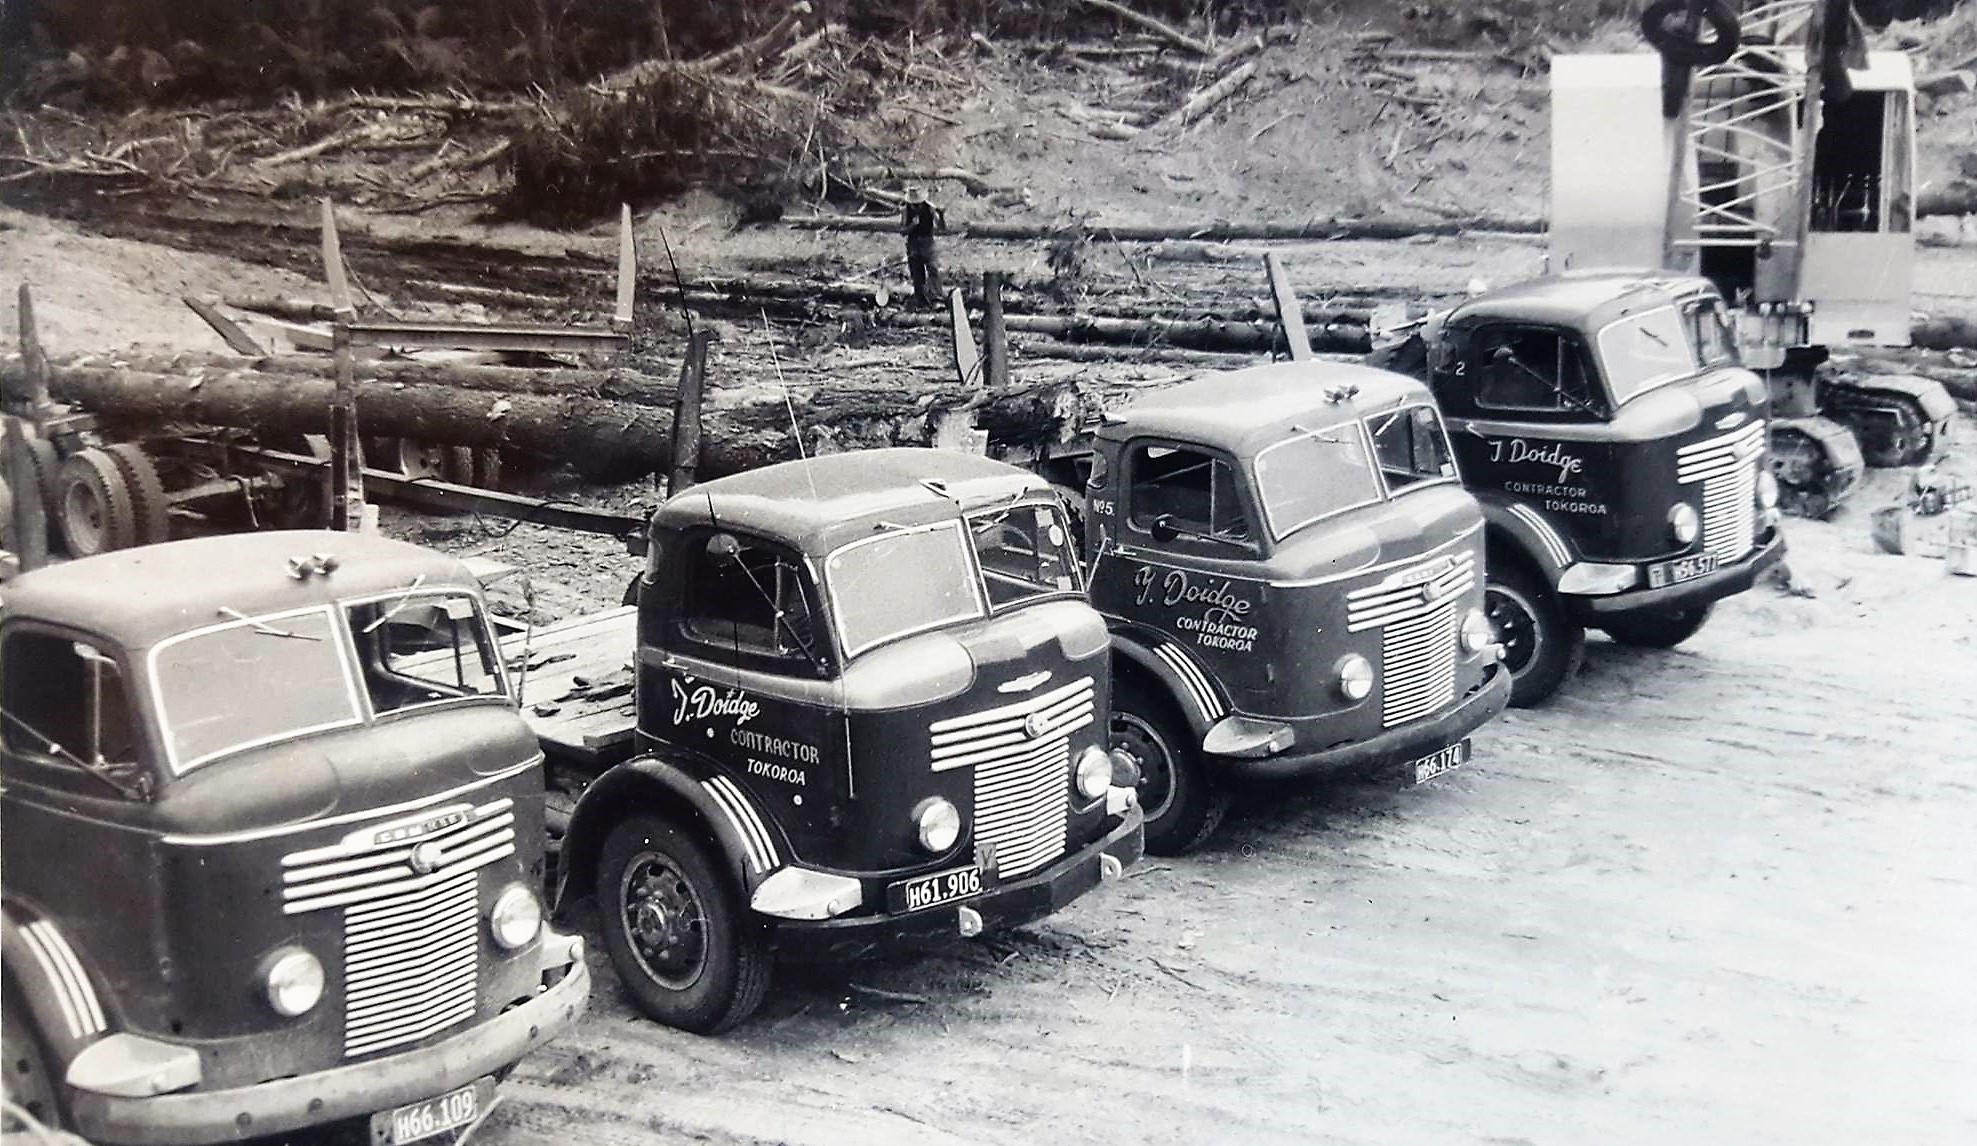 Trevor-Doidge-Tokoroa--Commer-logging-fleet-which-came-before-the-Internationals-2